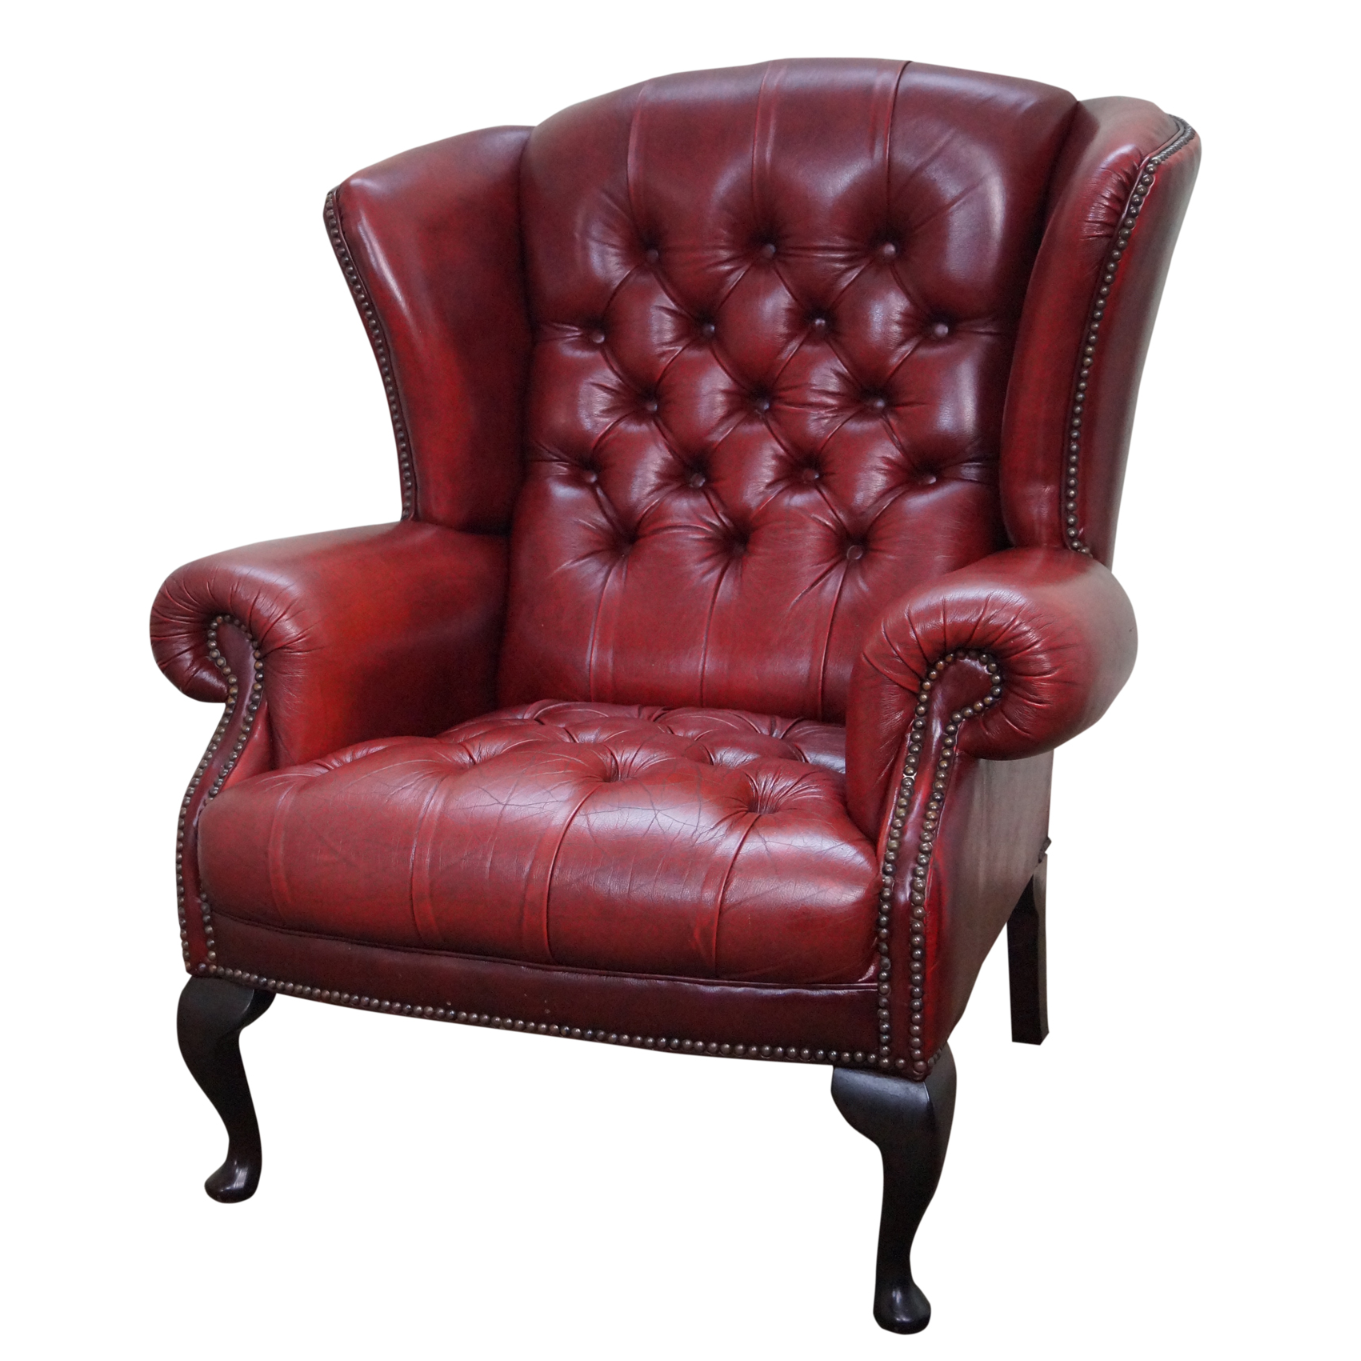 English tufted leather chesterfield wingback chair chairish